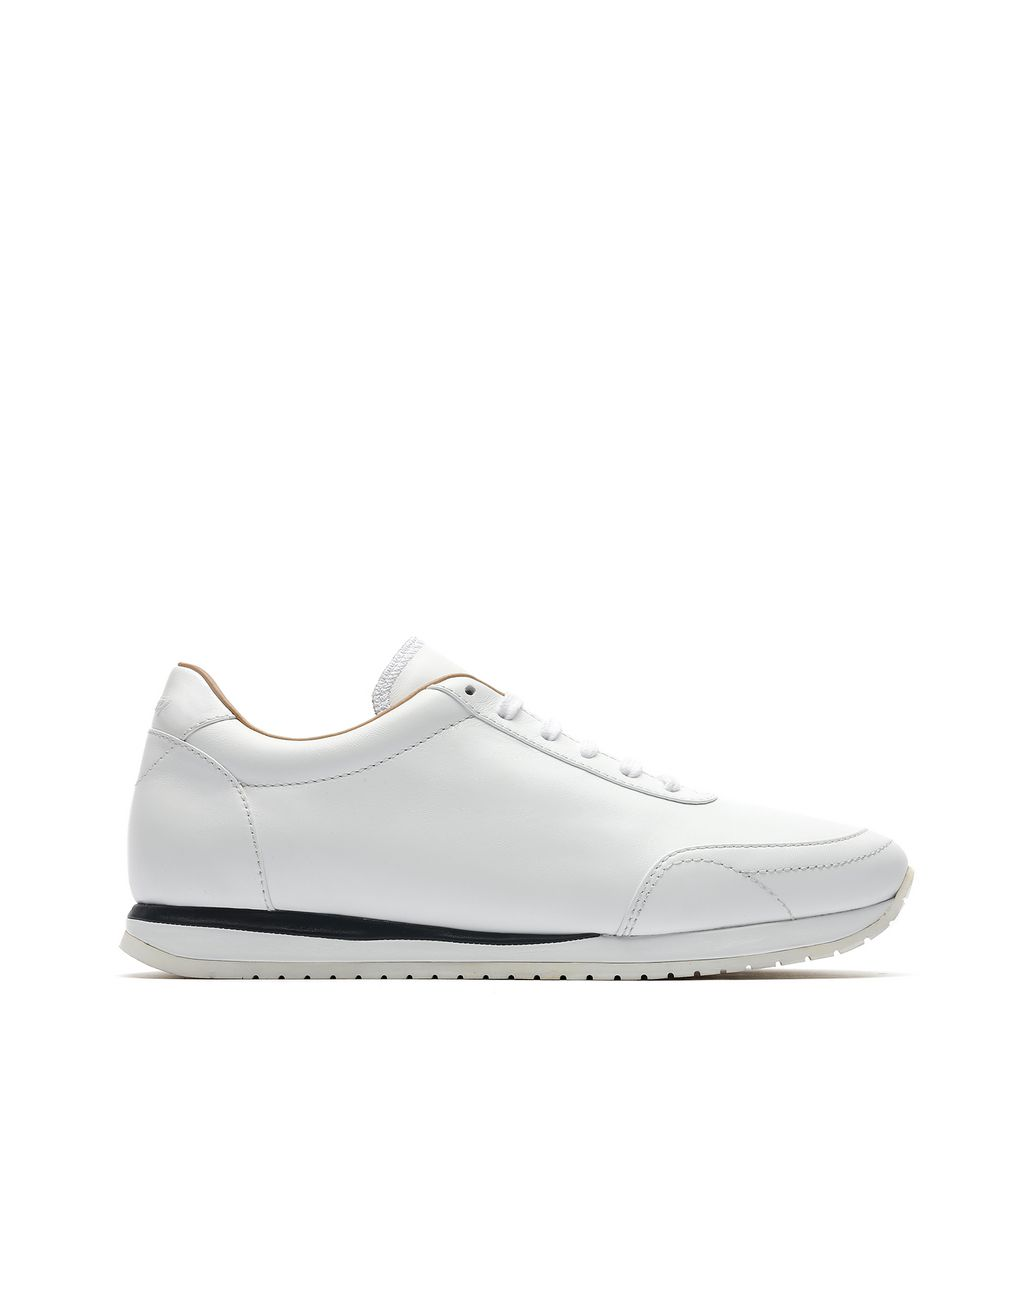 BRIONI White and Navy Blue Runner Sneakers Sneakers [*** pickupInStoreShippingNotGuaranteed_info ***] f